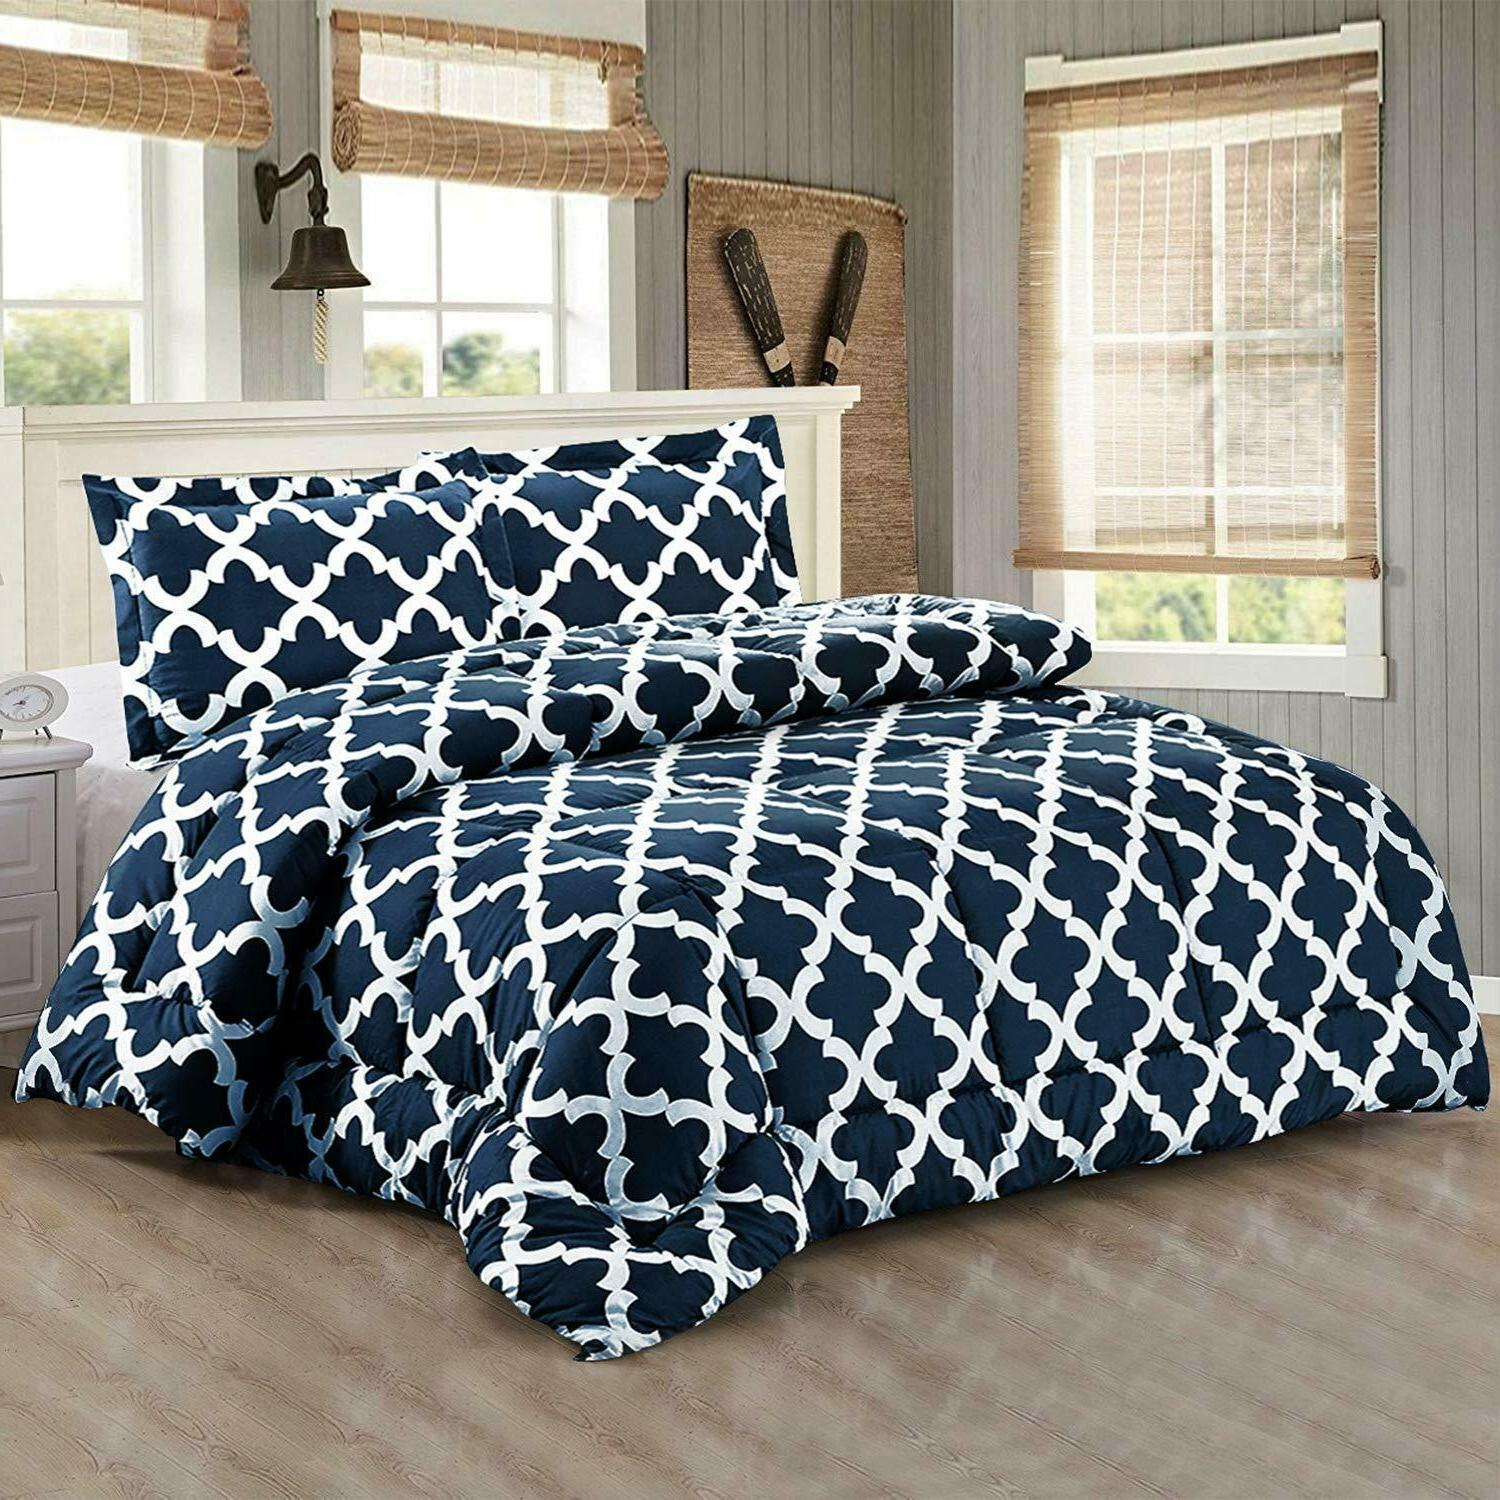 Printed Set with 2 Pillow Shams Microfiber